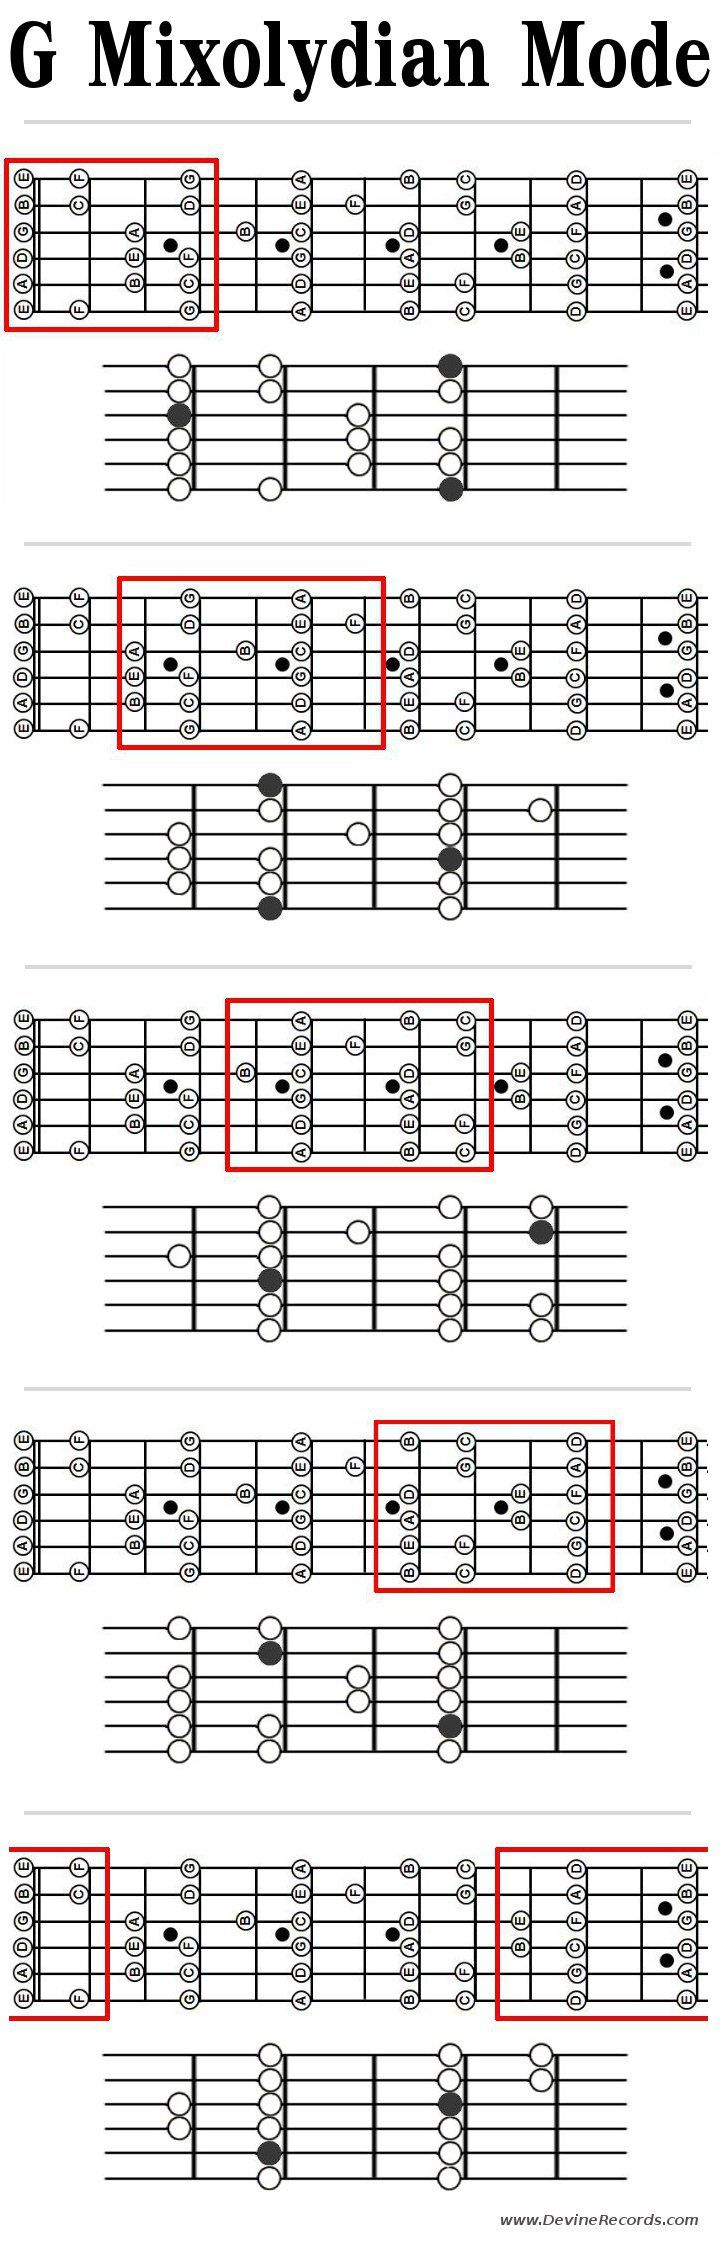 Guitar Mixolydian Mode Patterns in G. Patterns with root notes and note names.